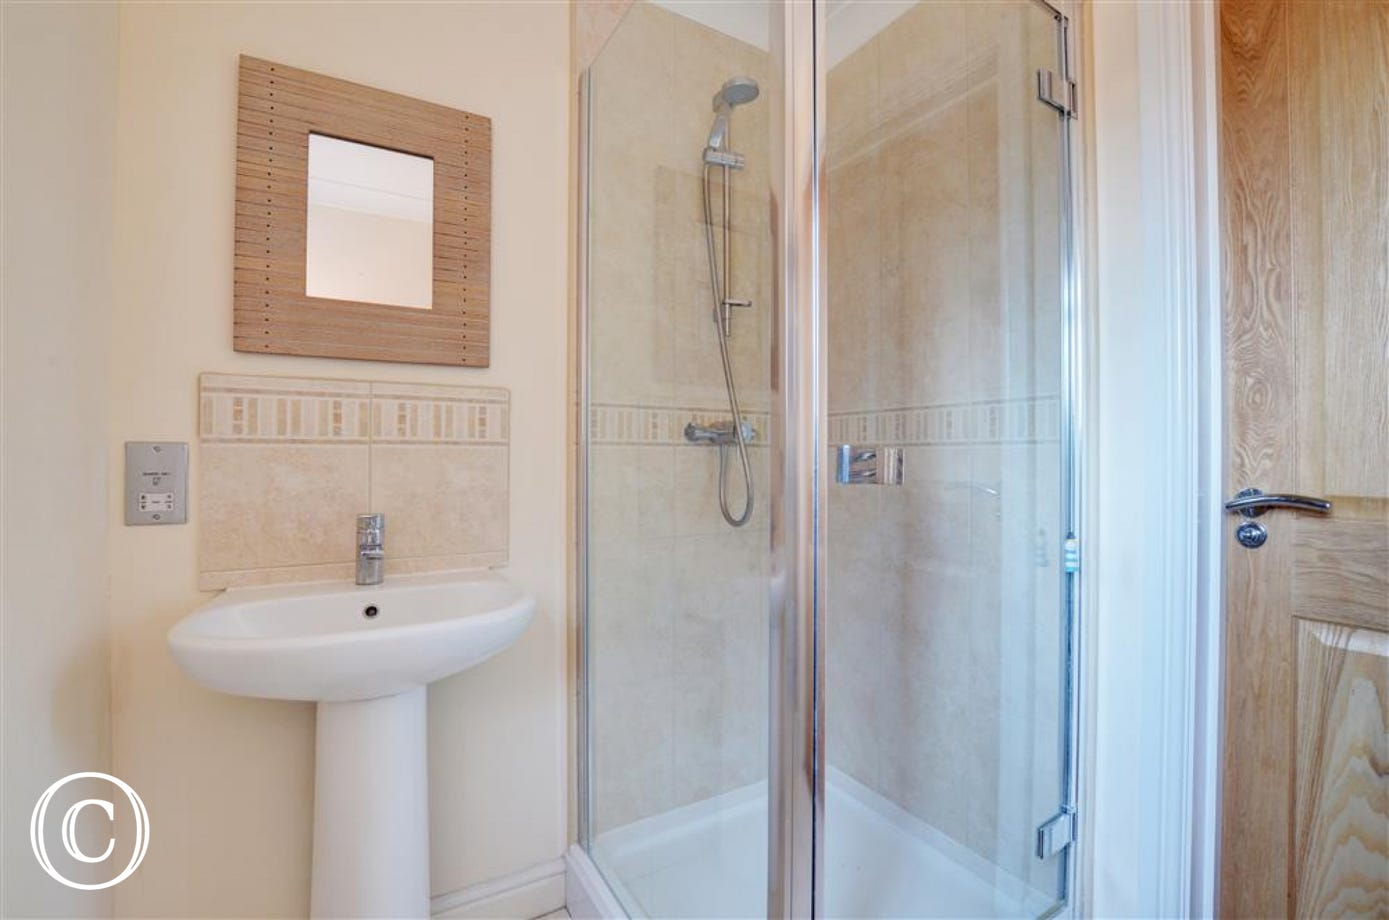 This property benefits from a ground floor shower room